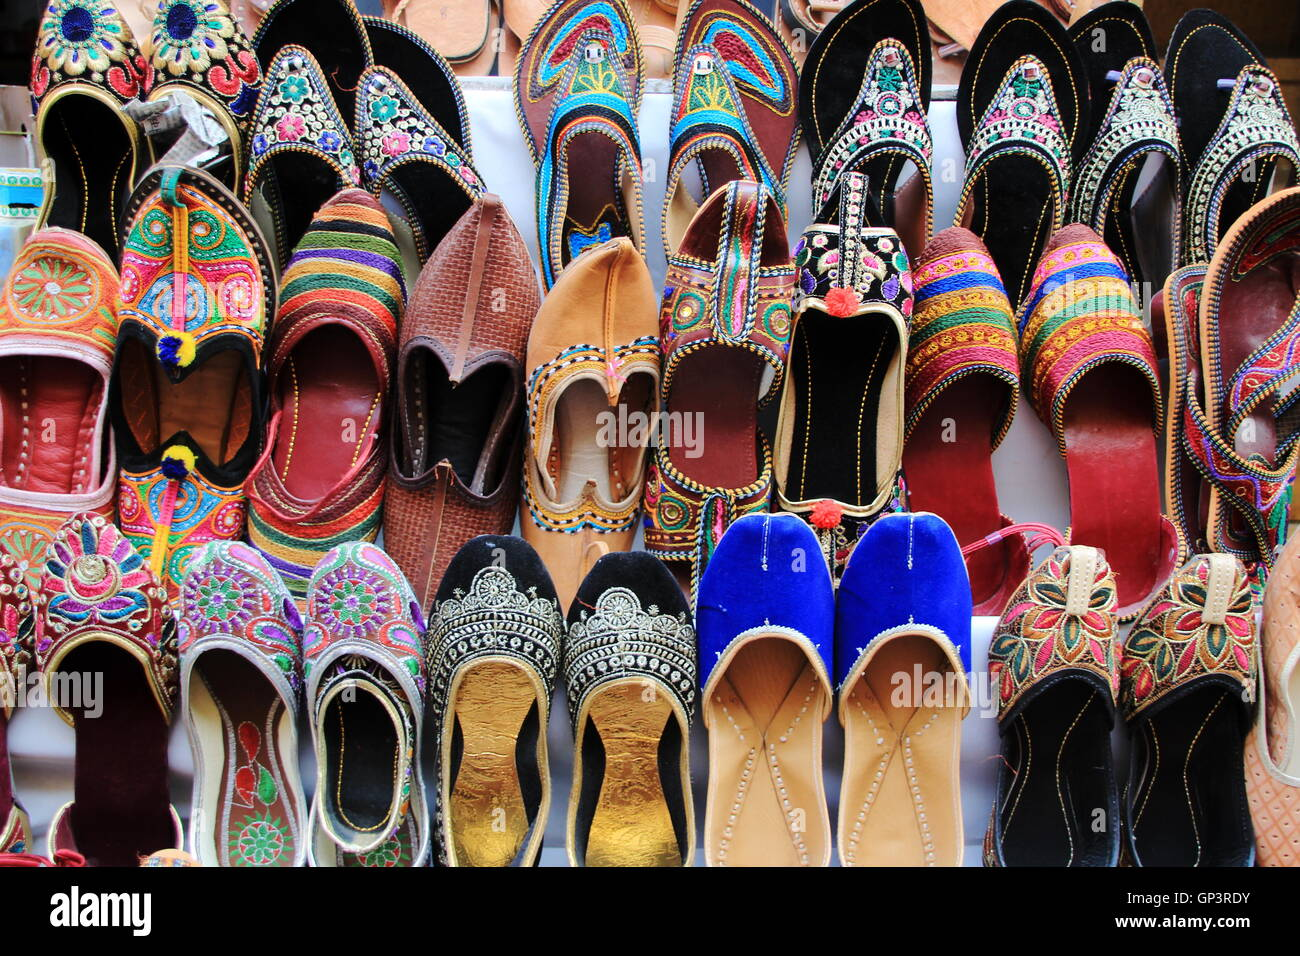 Hand crafted, colorful shoes on display at Jaisalmer Fort, Jaisalmer, Rajasthan, India, Asia - Stock Image